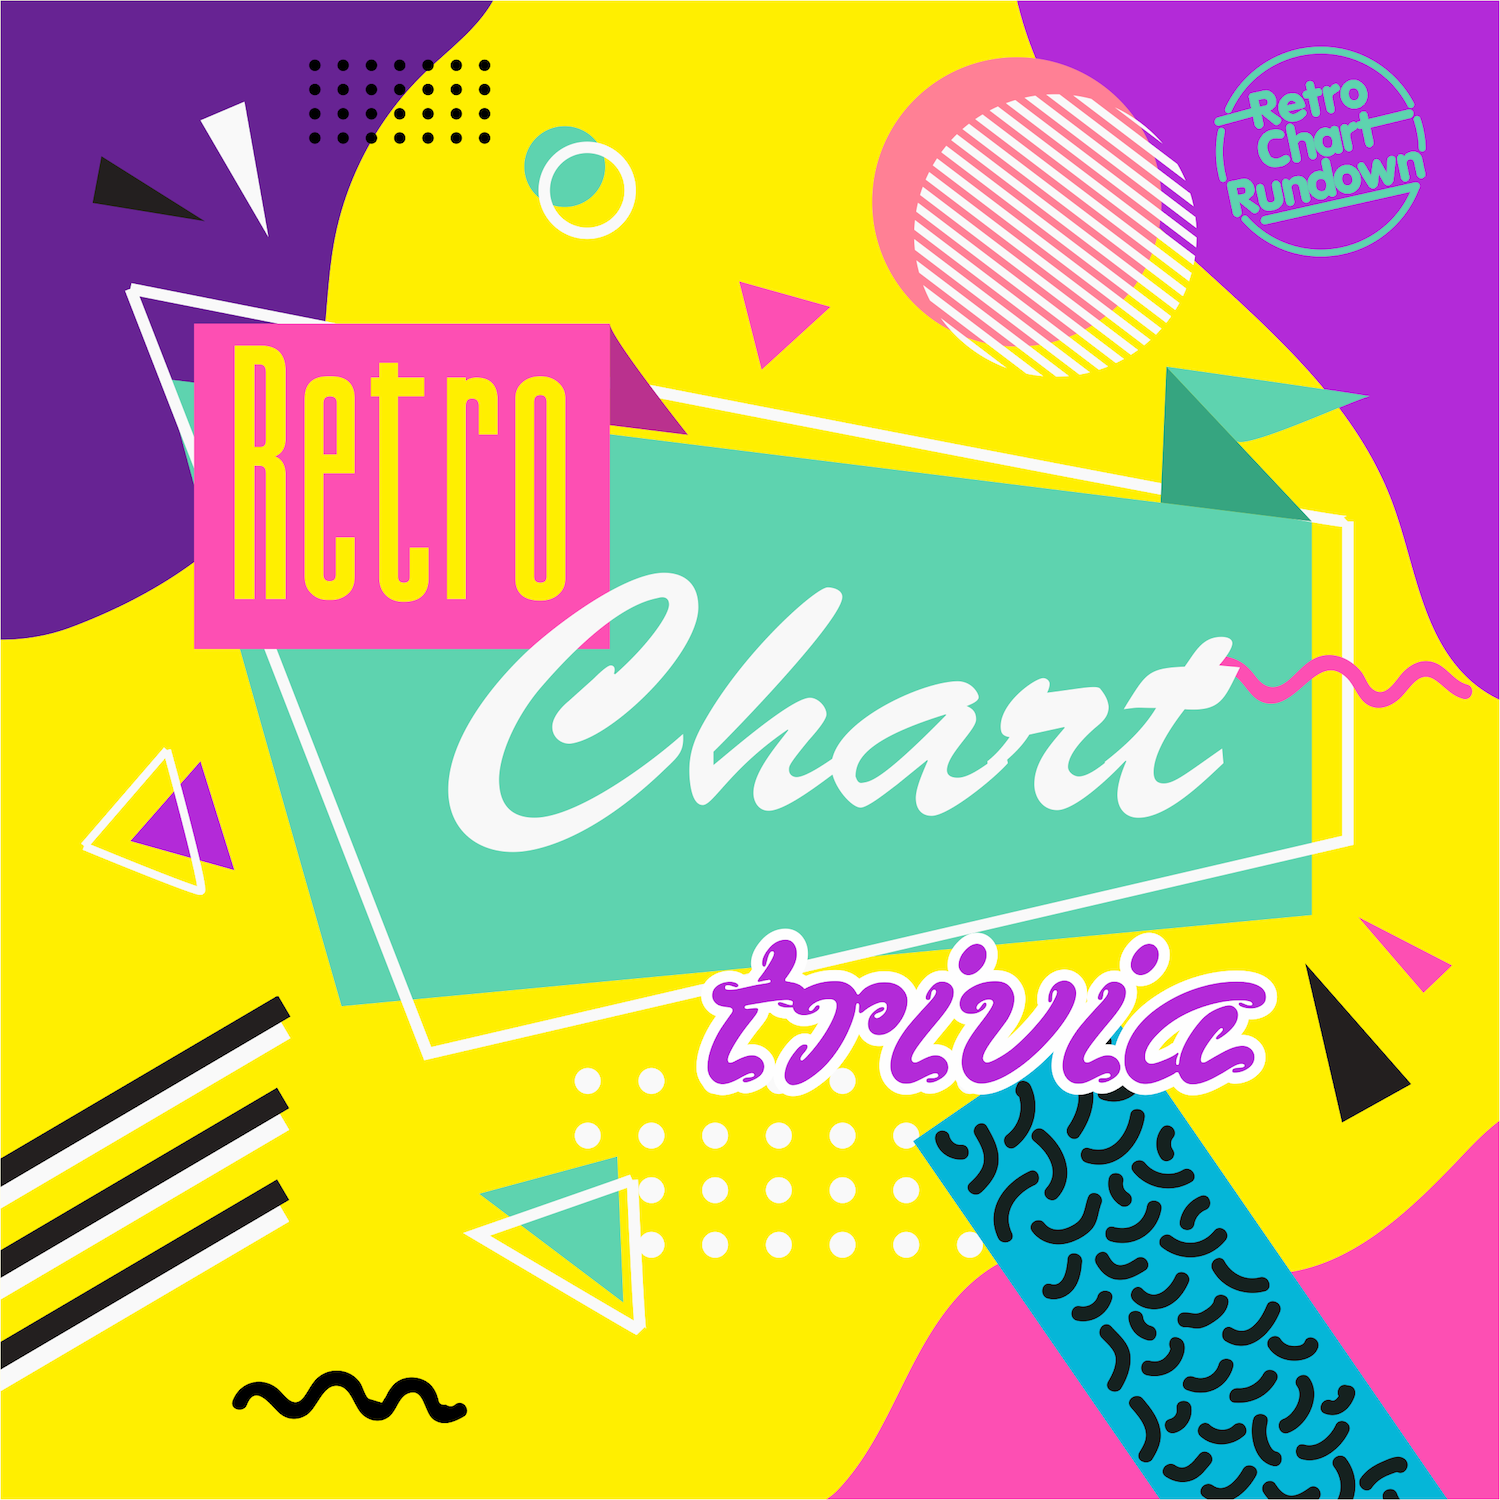 Retro Chart Trivia Podcast - Listen, Reviews, Charts - Chartable